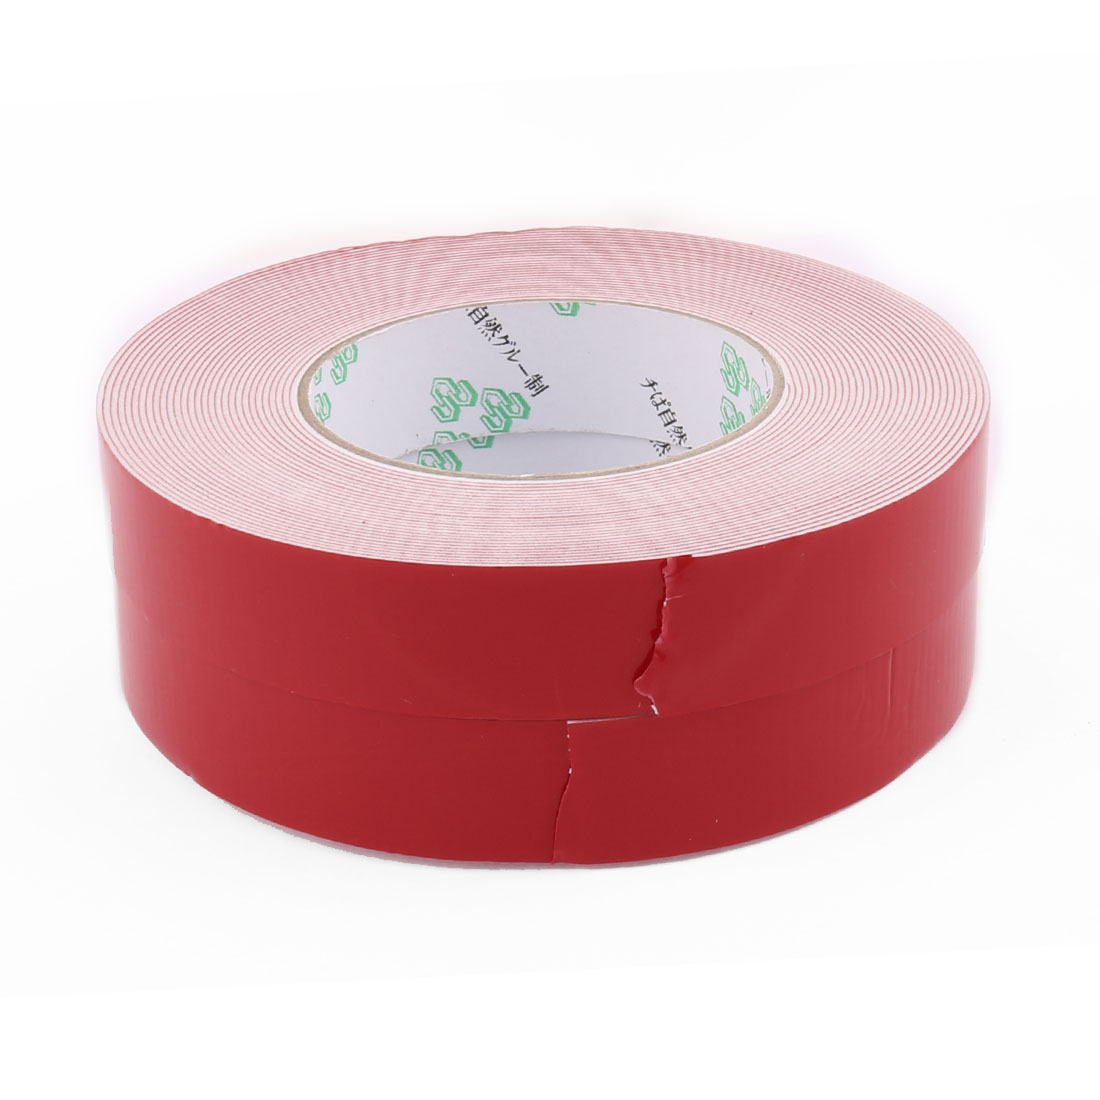 2pcs 2.5MM x 1MM 10M Long Thick White Dual Sided Waterproof Sponge Tape for Car